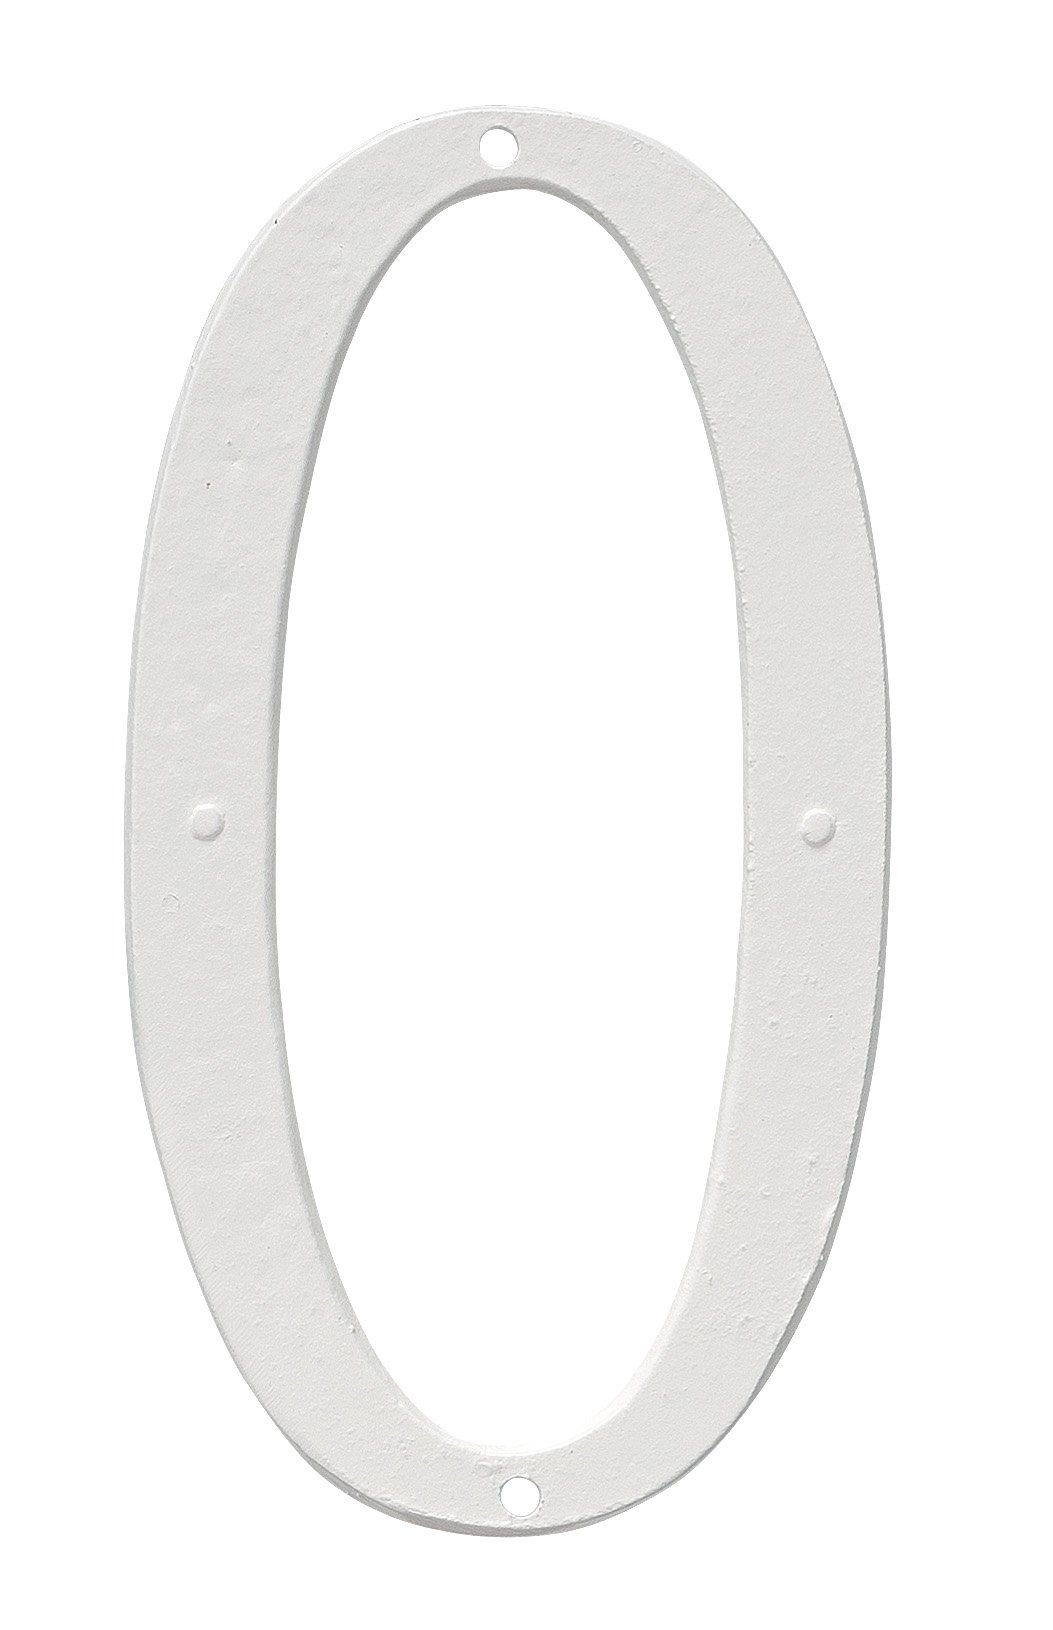 Montague Metal Products CSHN-4-0-W Aluminum House Number 0 Outdoor Plaque, Small, White